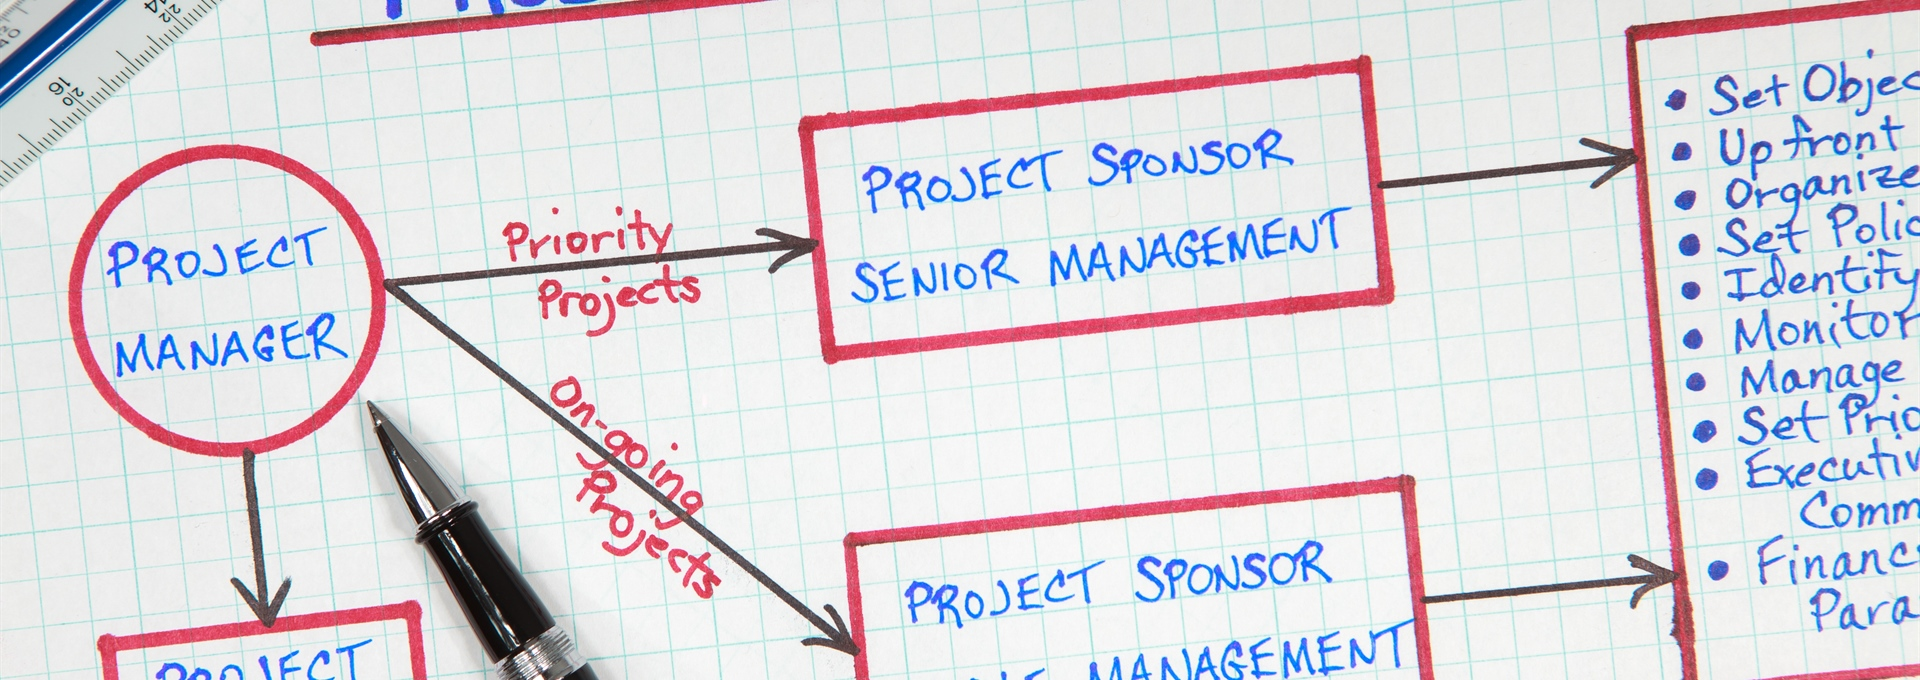 CHESS Project Portfolio Management (PPM) is a synergy of management services